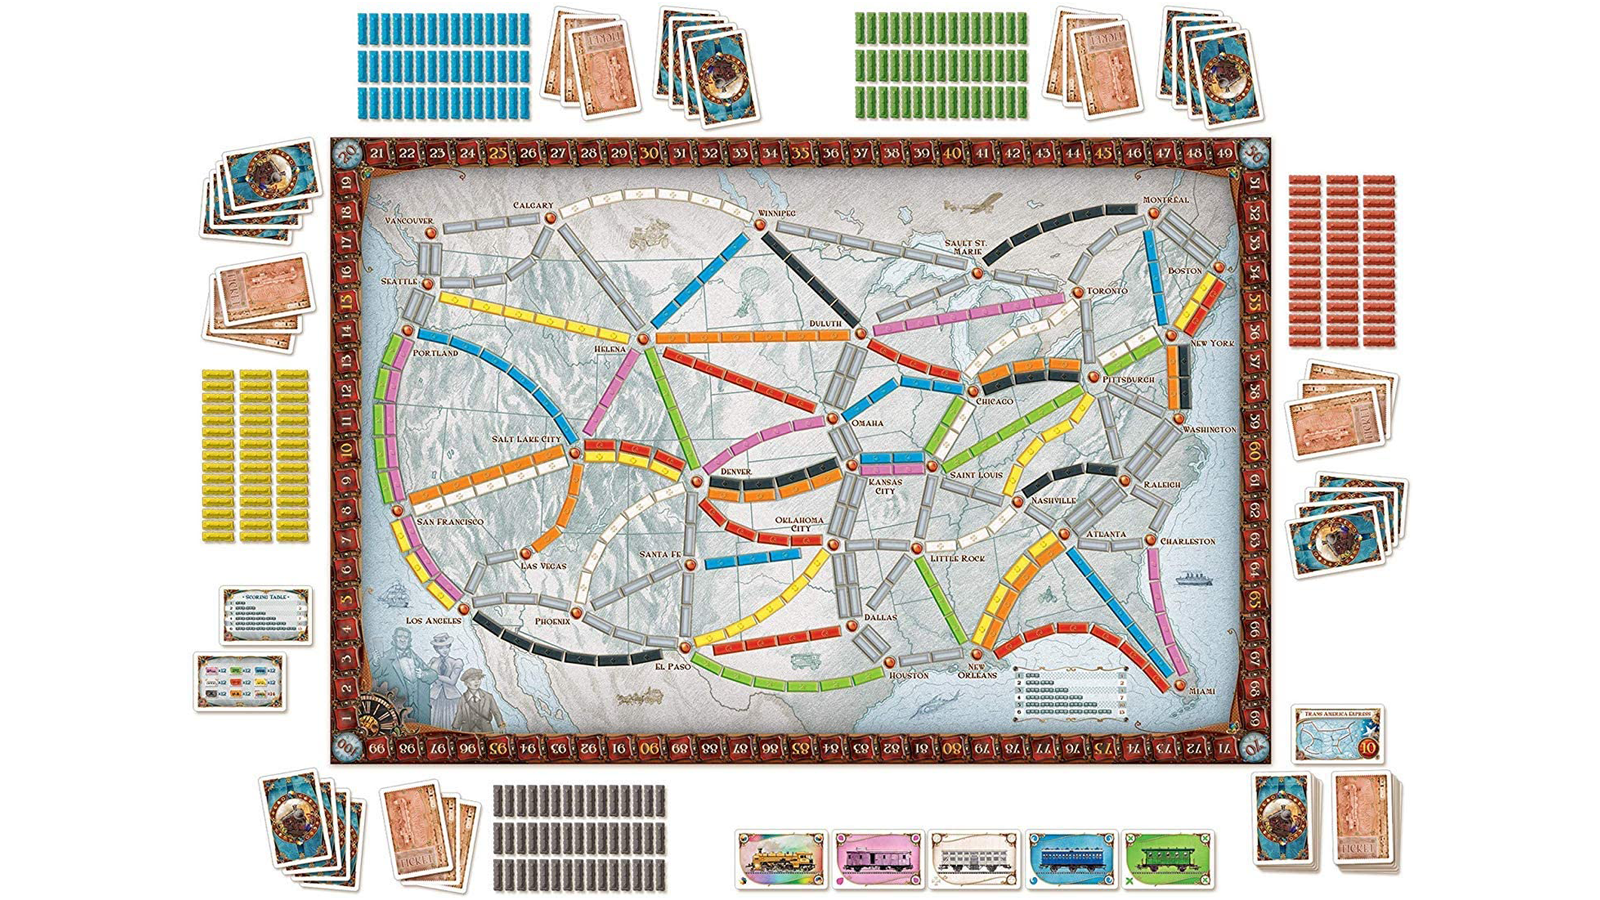 Ticket to Ride top-down view of board, cards, and other accessory components